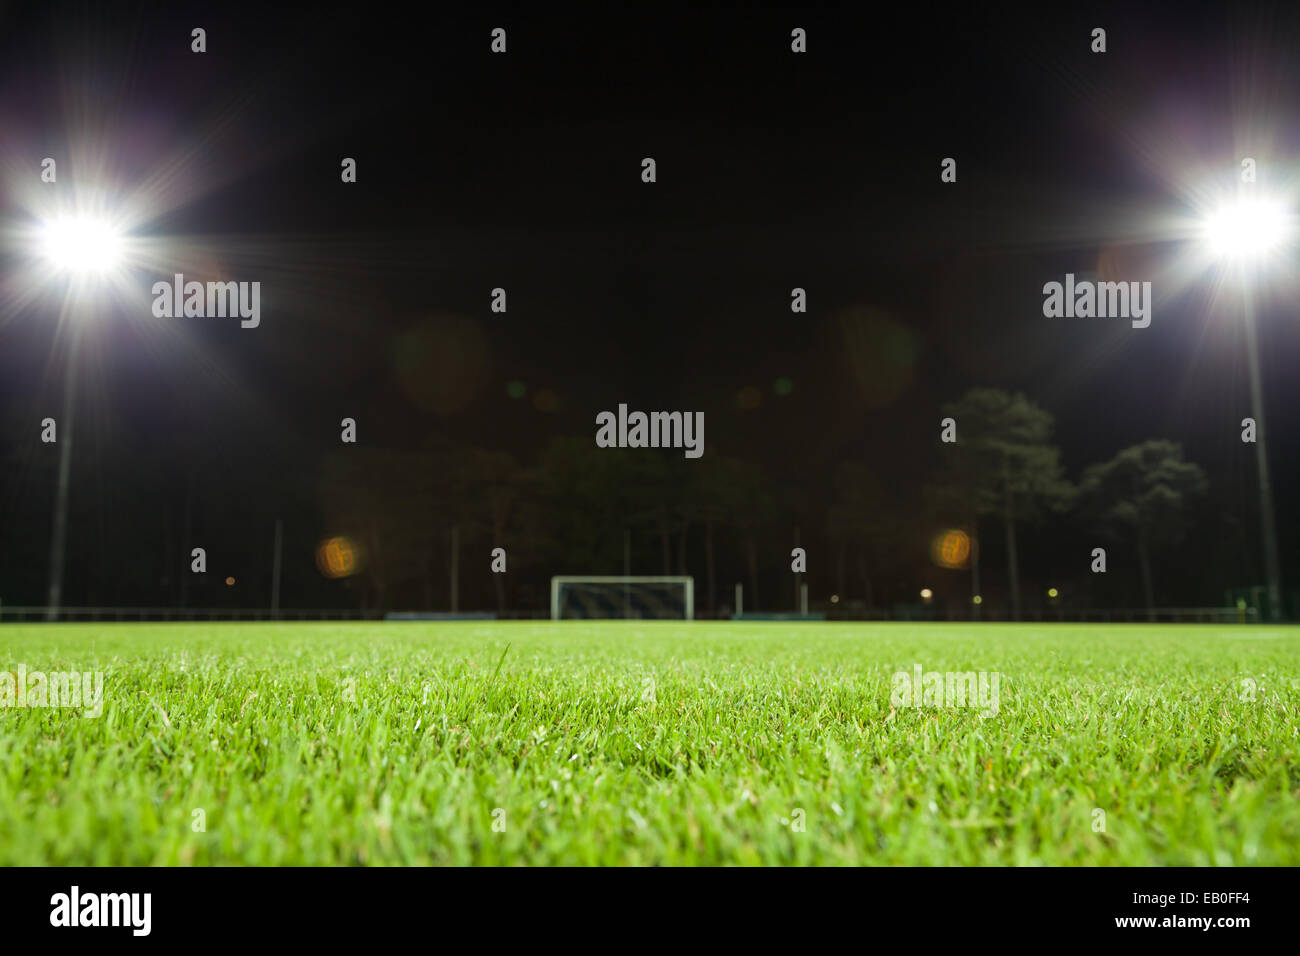 soccer field and goal with spot lights - Stock Image